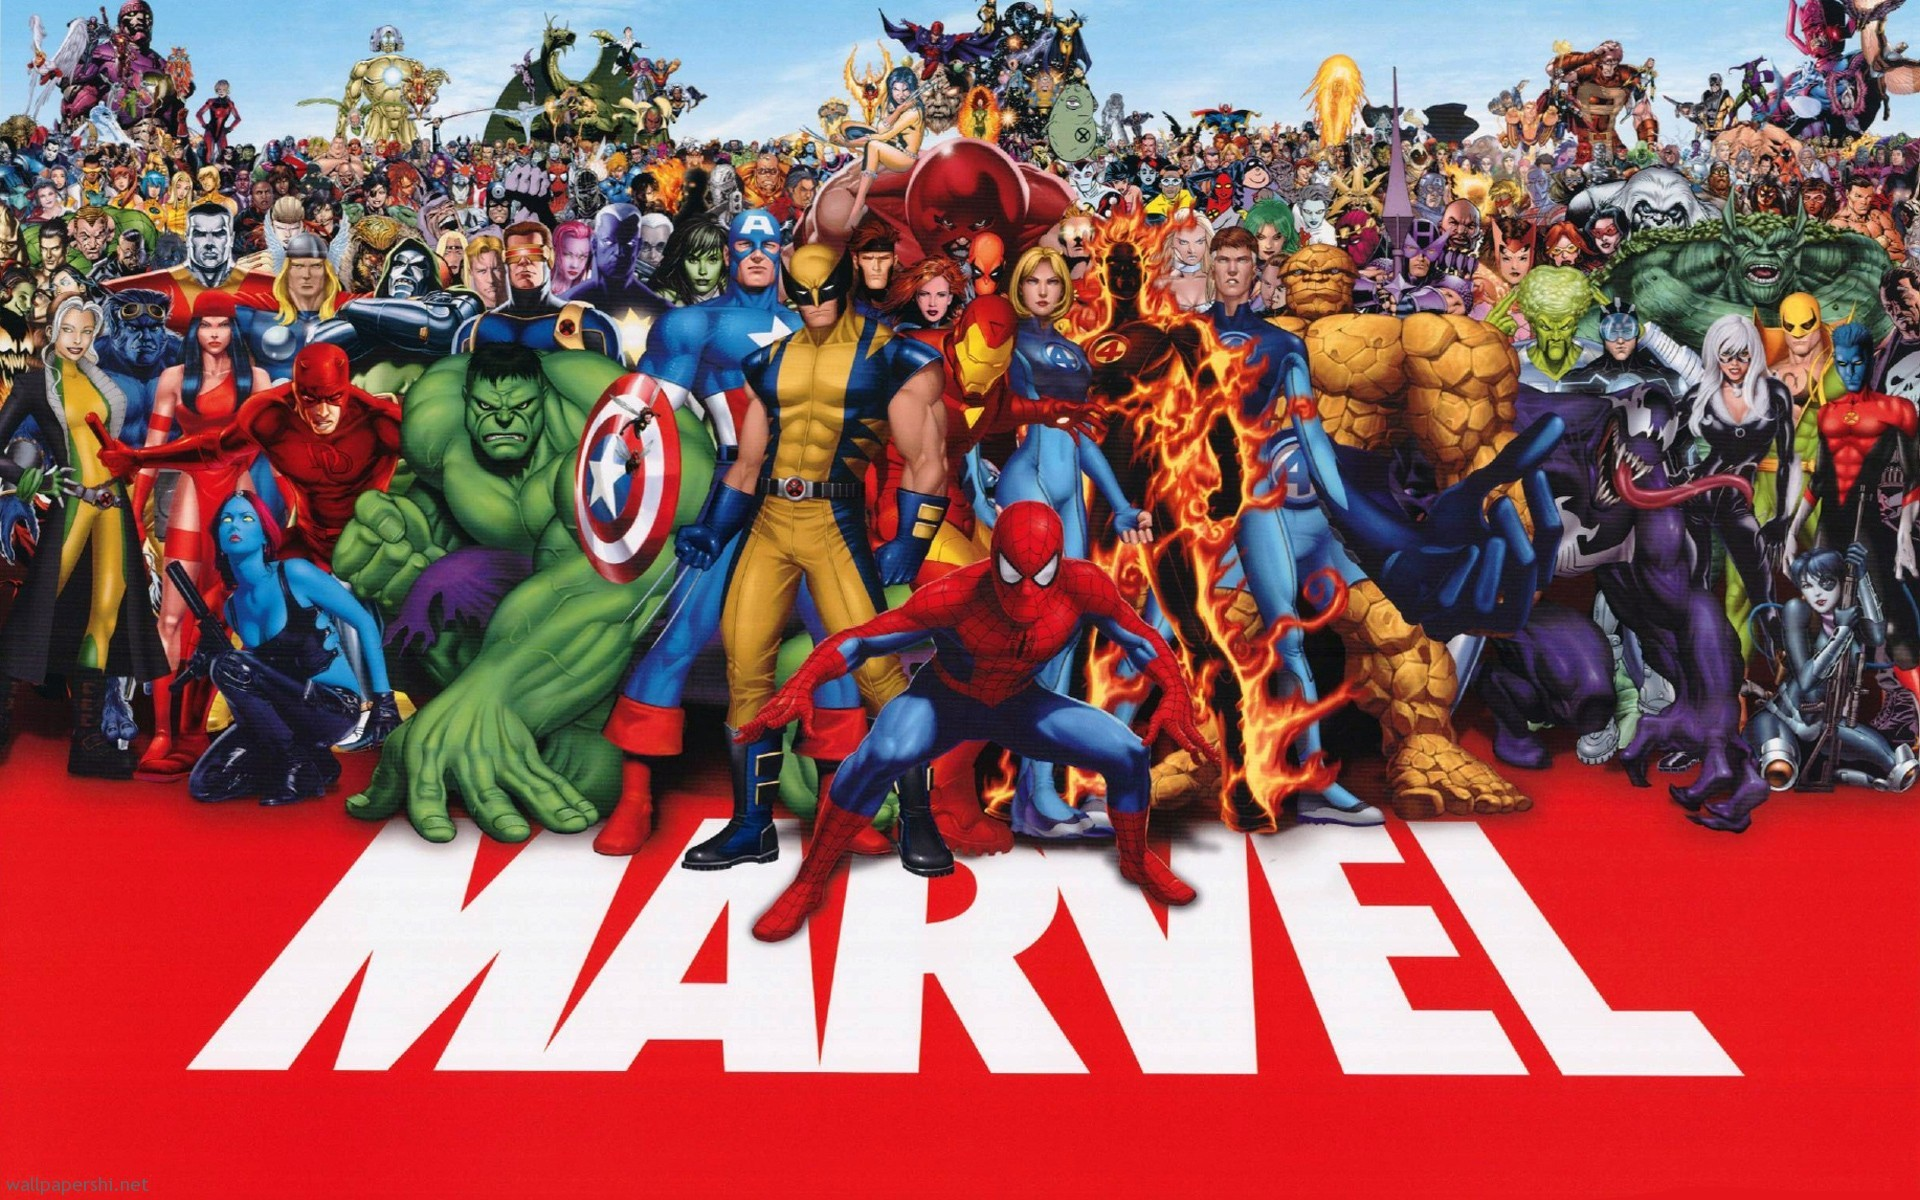 Free Superhero Wallpapers For Desktop: Marvel Wallpapers And Desktop Backgrounds Up To 8K